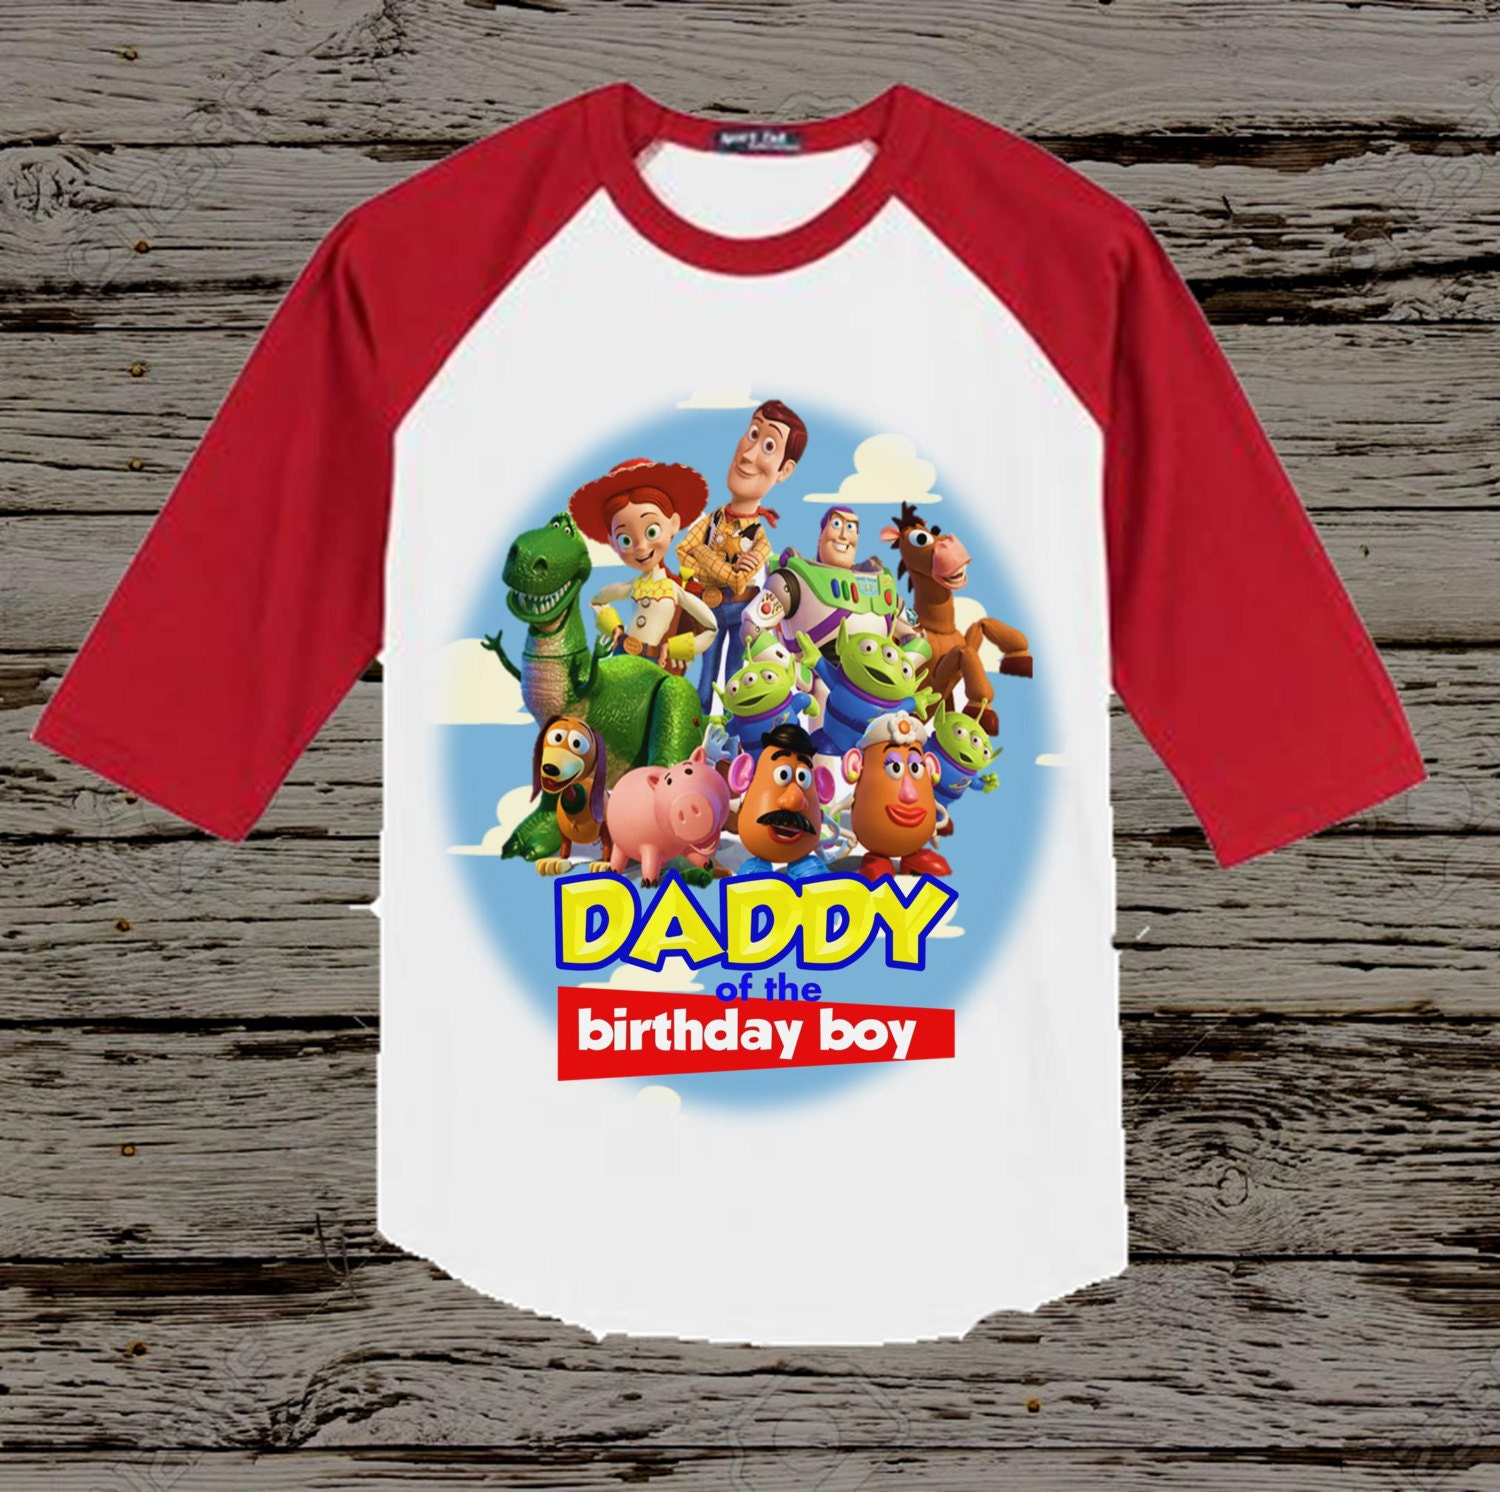 Boy Toys For Dads : Toy story dad shirt birthday girl or boy available